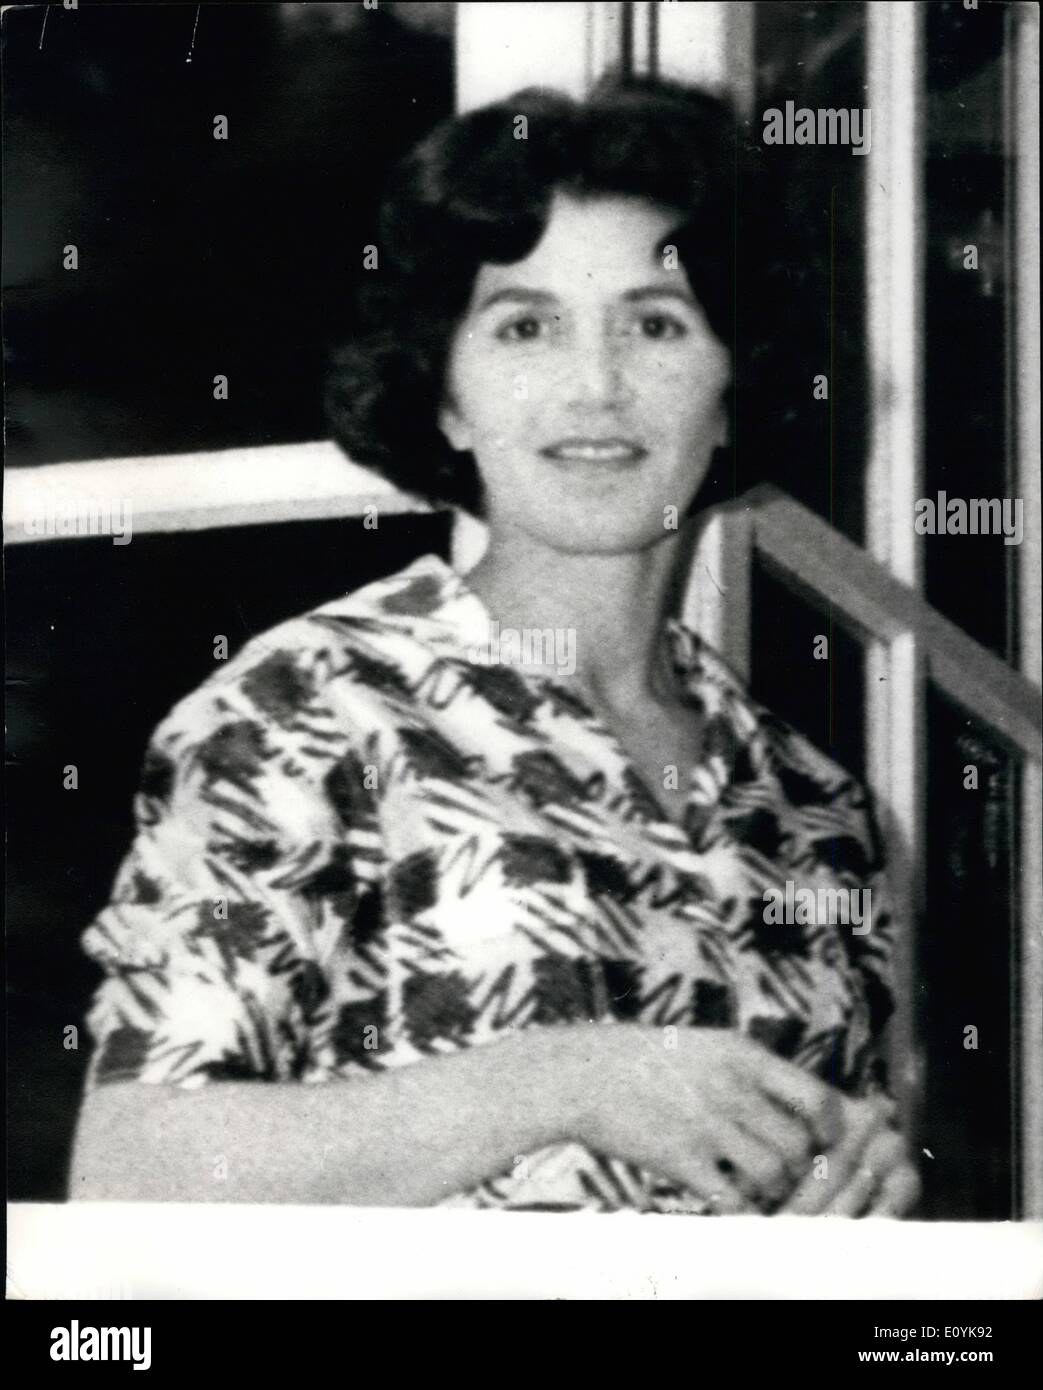 Aug. 08, 1970 - Niarchos Accused of Wife's Death. Prosecutor's ''Fatal Injury'' Claim. Stavros Niarchos, the Greek shipping magnate, was accused last night of fatally injuring his wife, Eugenie, 42, who died on his private island, Spetsopoula, on May 4. The accusation was announced by the public prosecutor in Piraeus, who has recommended that Mr. Niarchos be committees for trial. After Mrs. Niarchos' death, a burial permit issues by the Athens mortuary said she had died from an overdose of barbiturates. A post mortem examination later revealed marks of injuries on the body. Mr - Stock Image